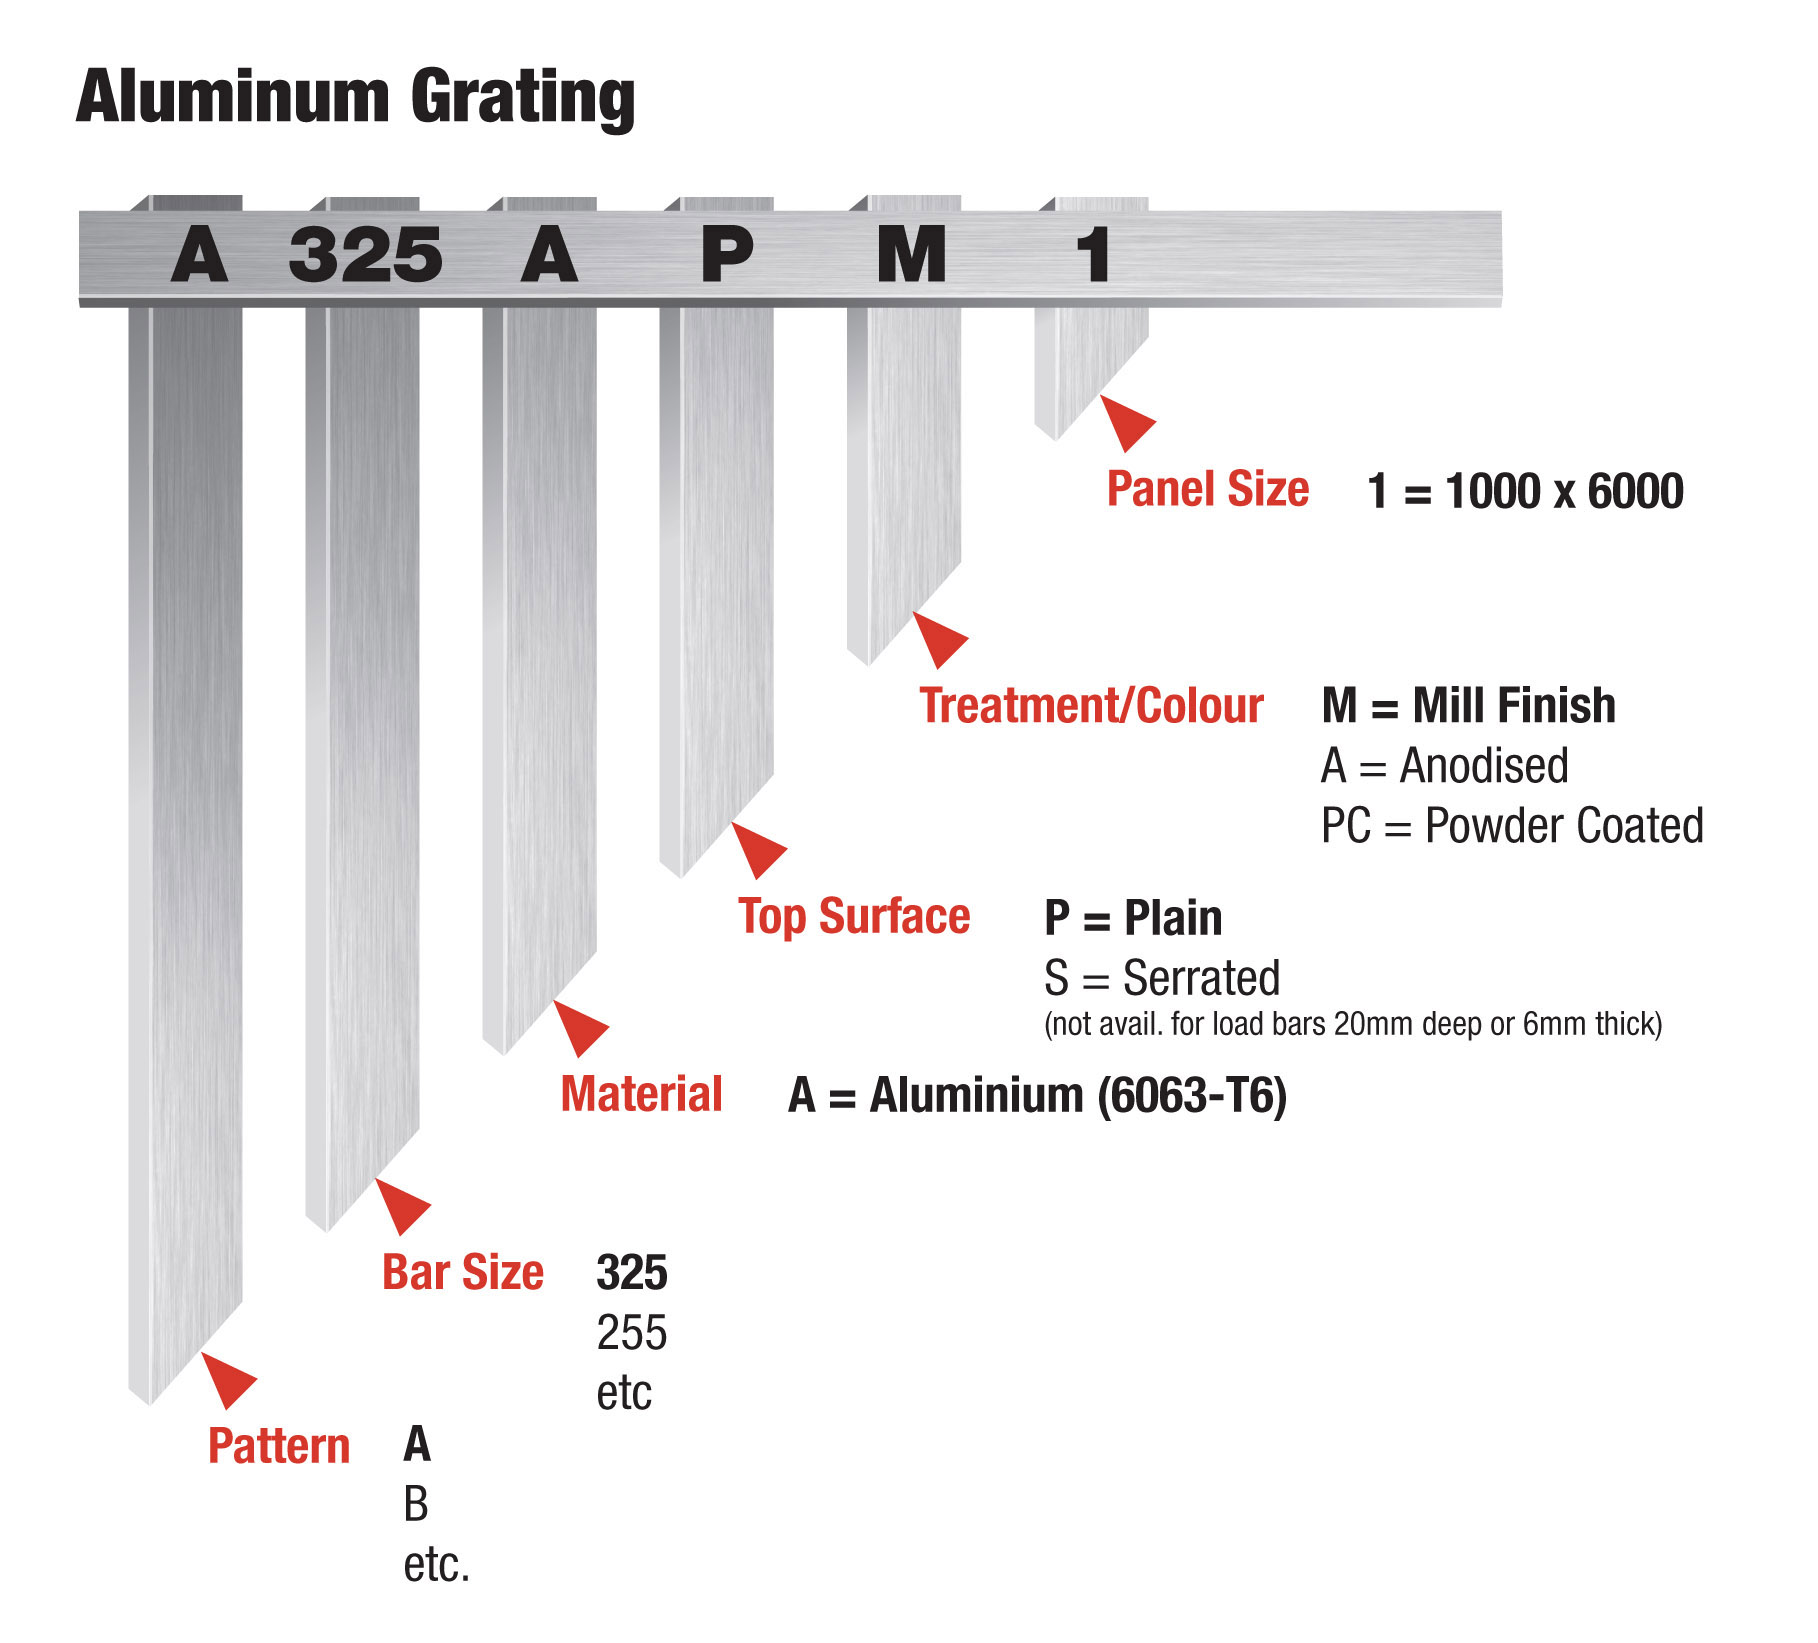 Aluminium grating part numbers